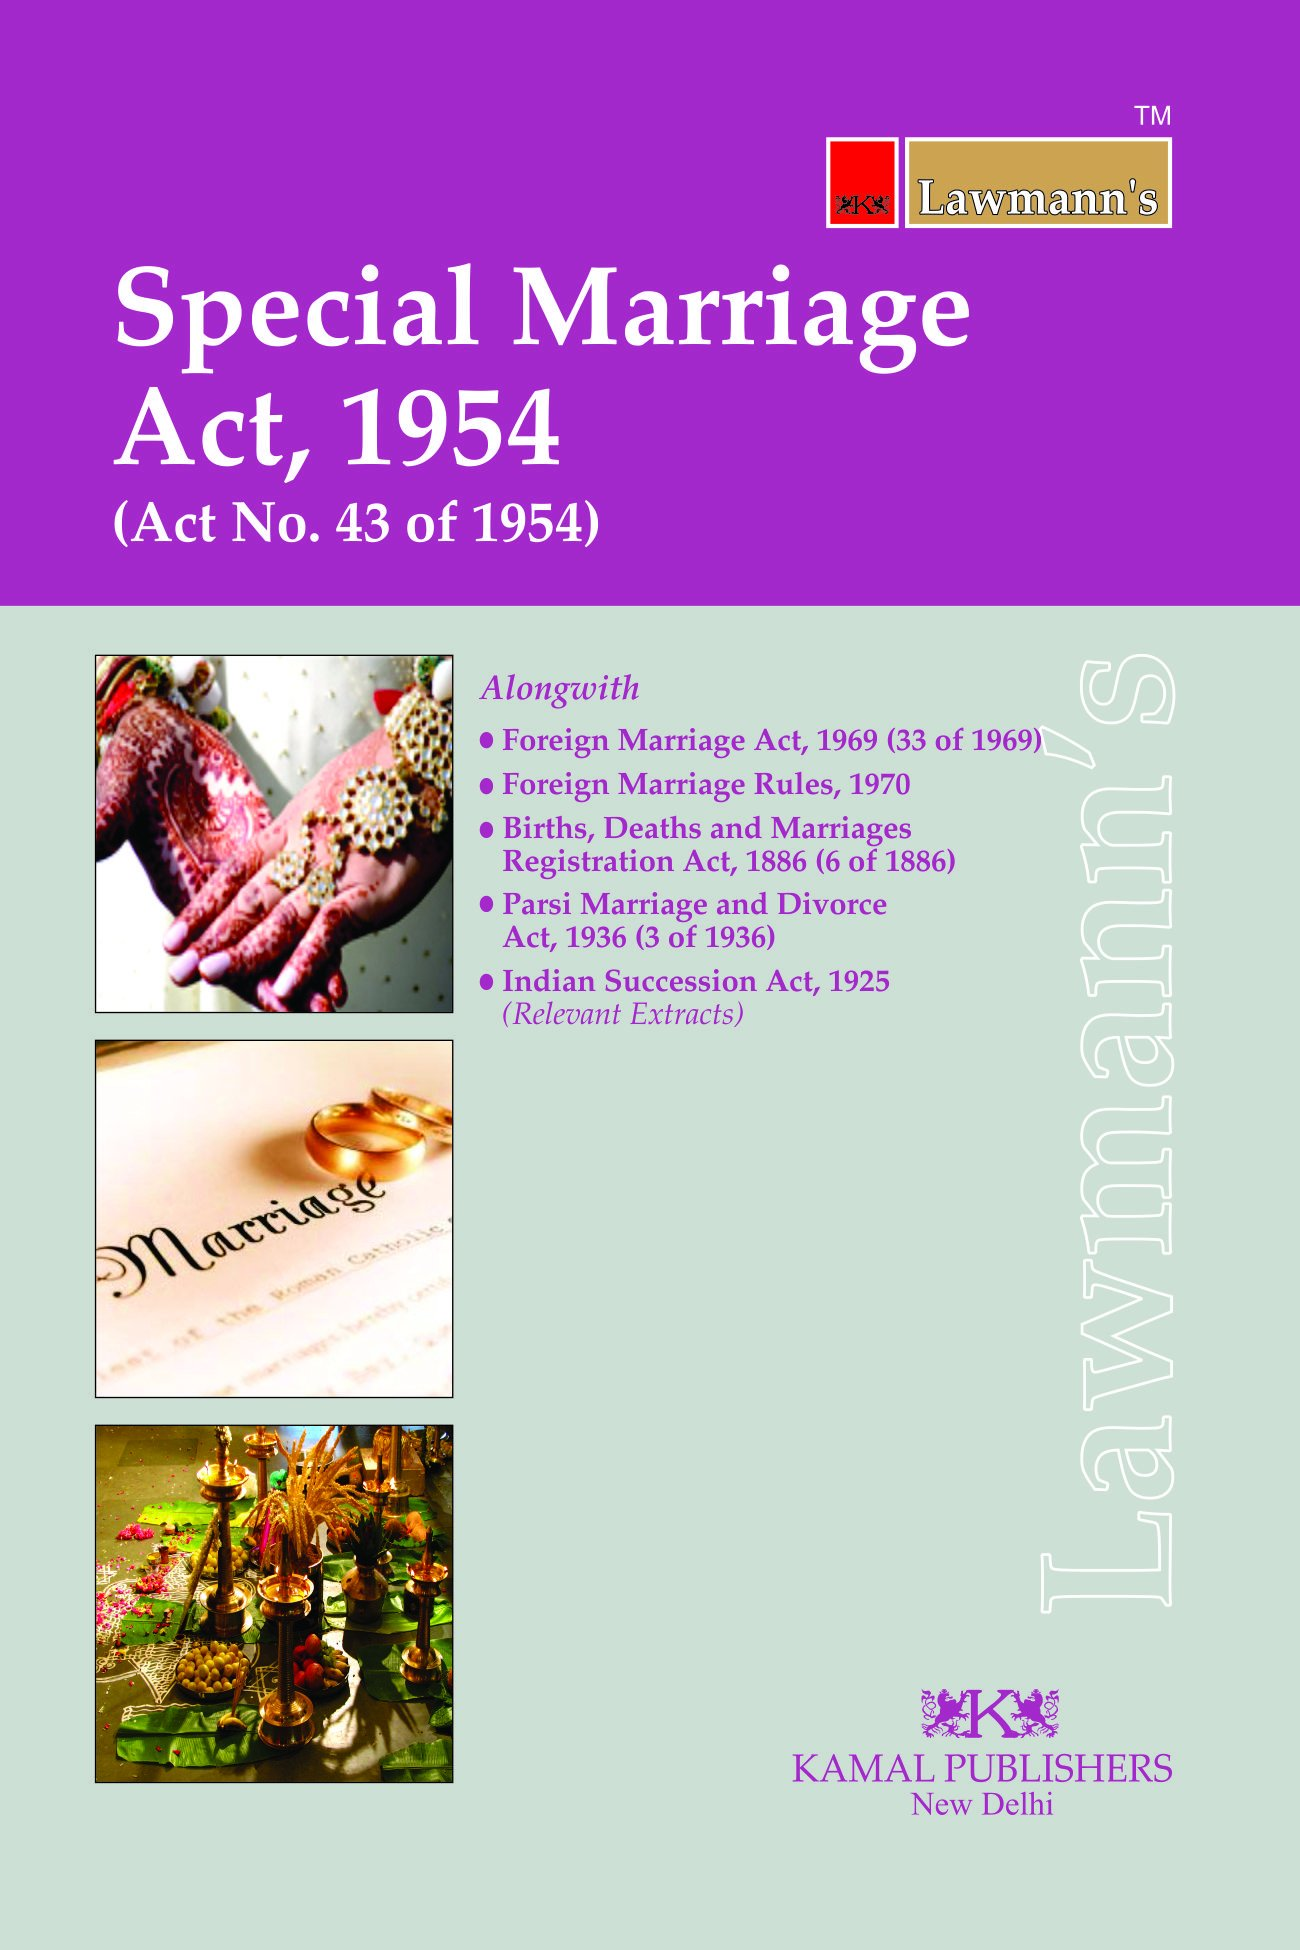 grounds of divorce under special marriage act